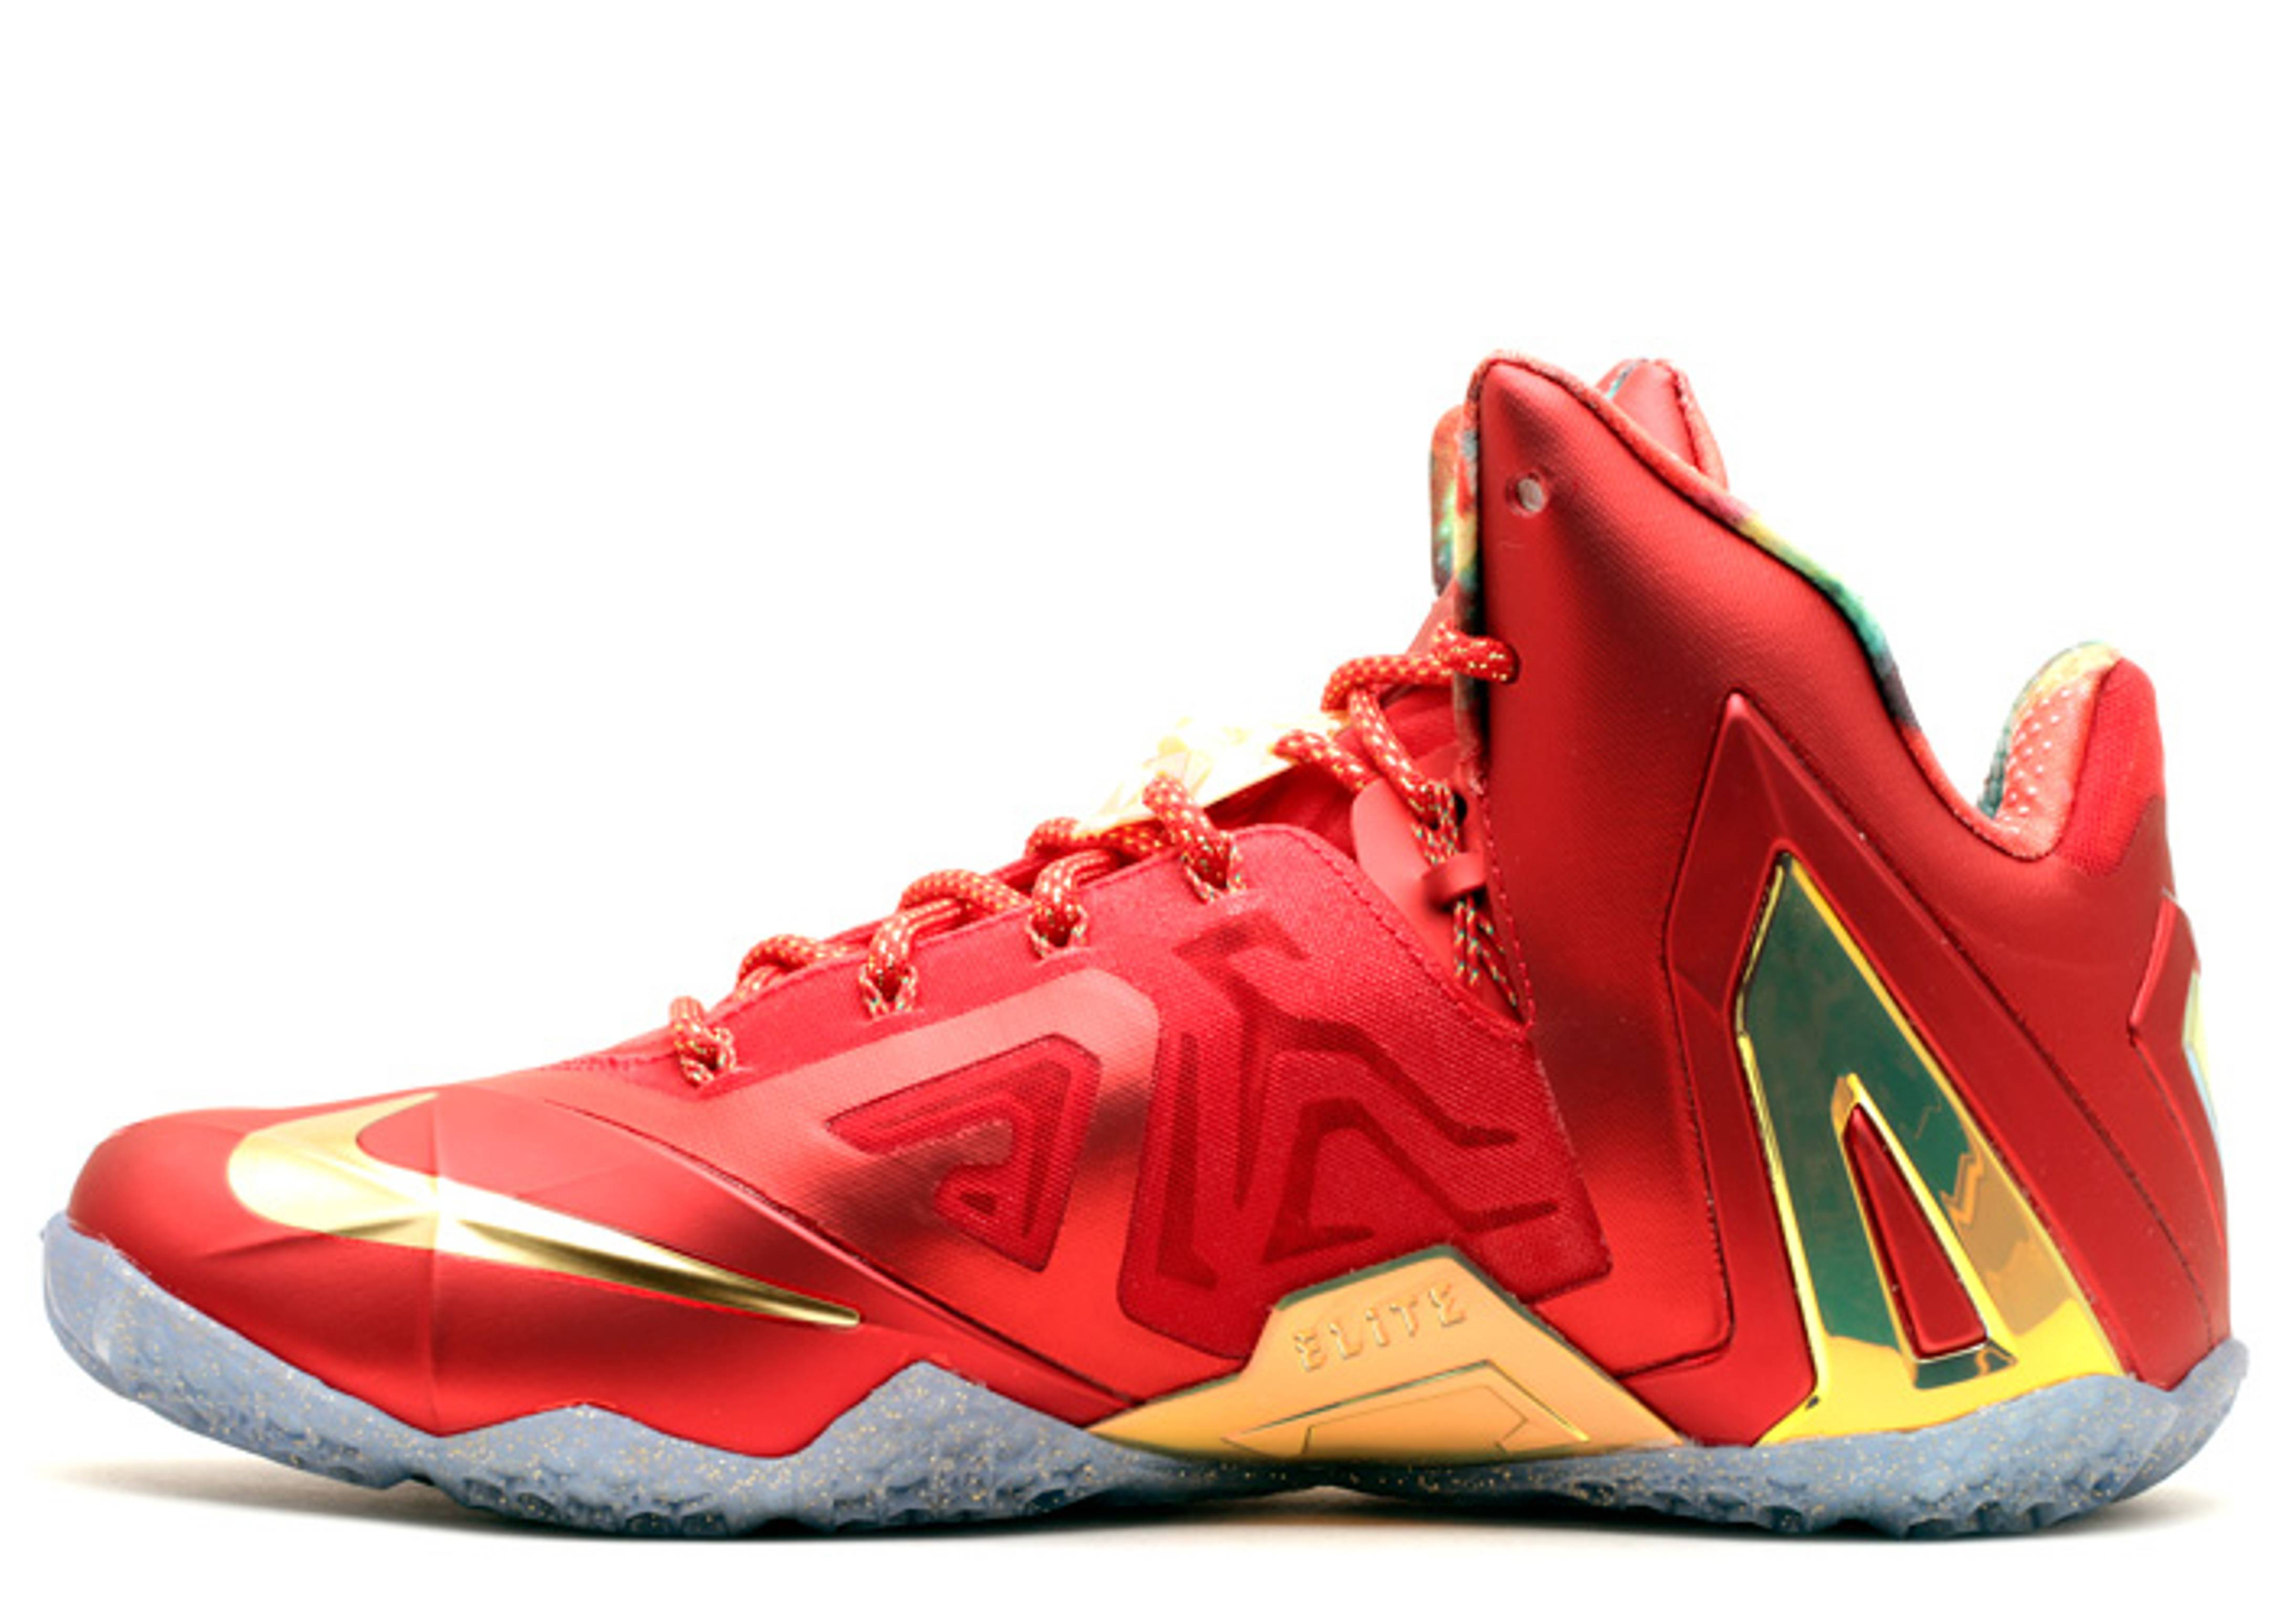 lebron 11 elite se nike 695226 670 university red